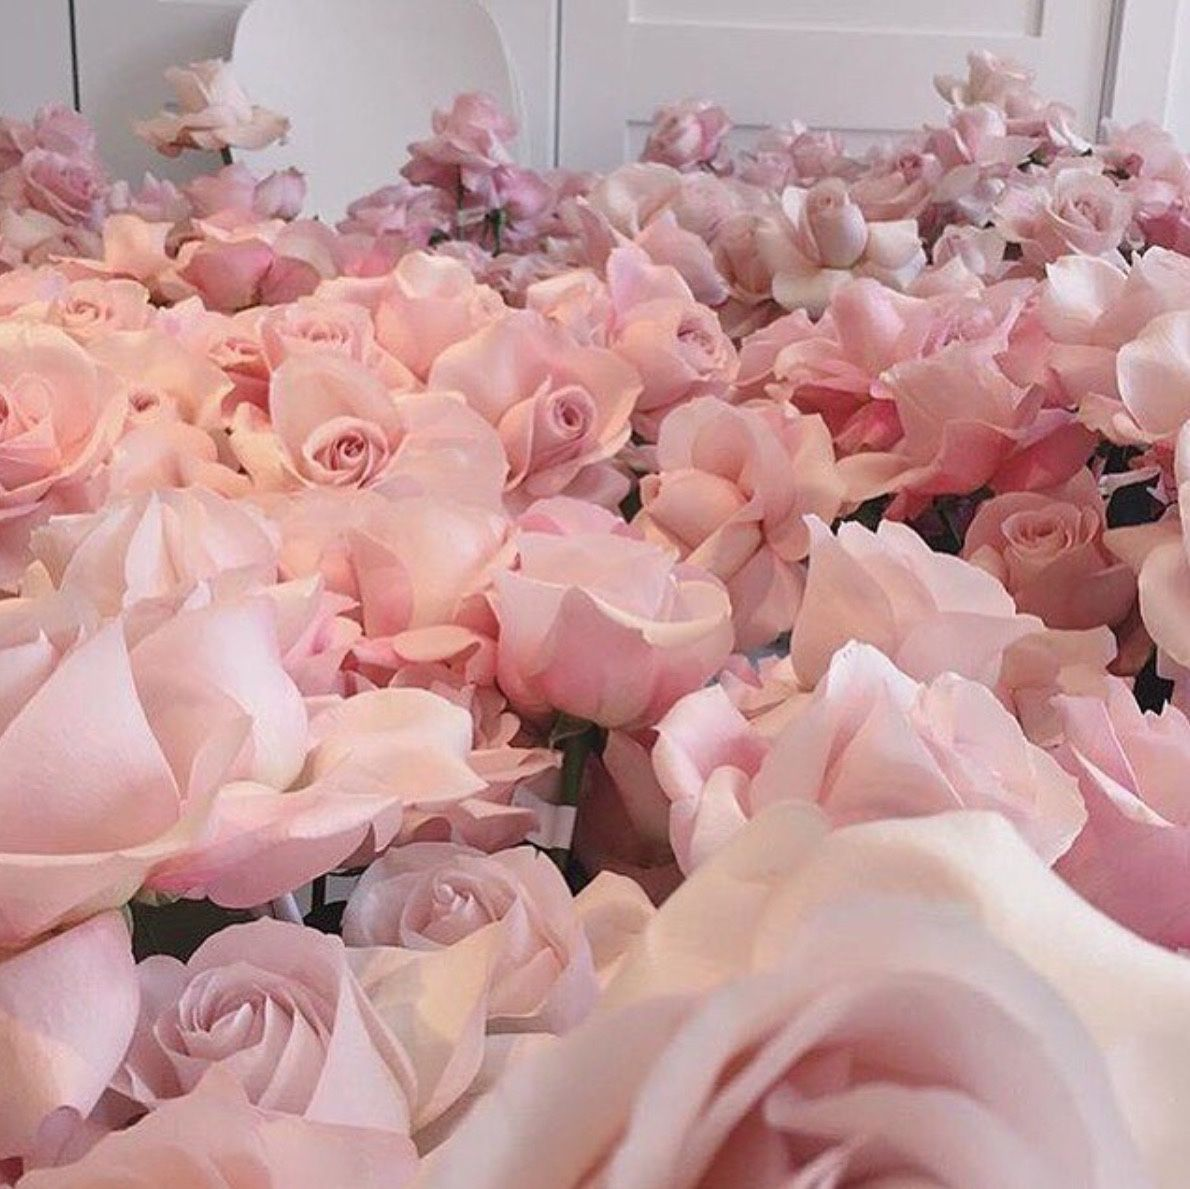 Pink Roses Tumblr Aesthetic